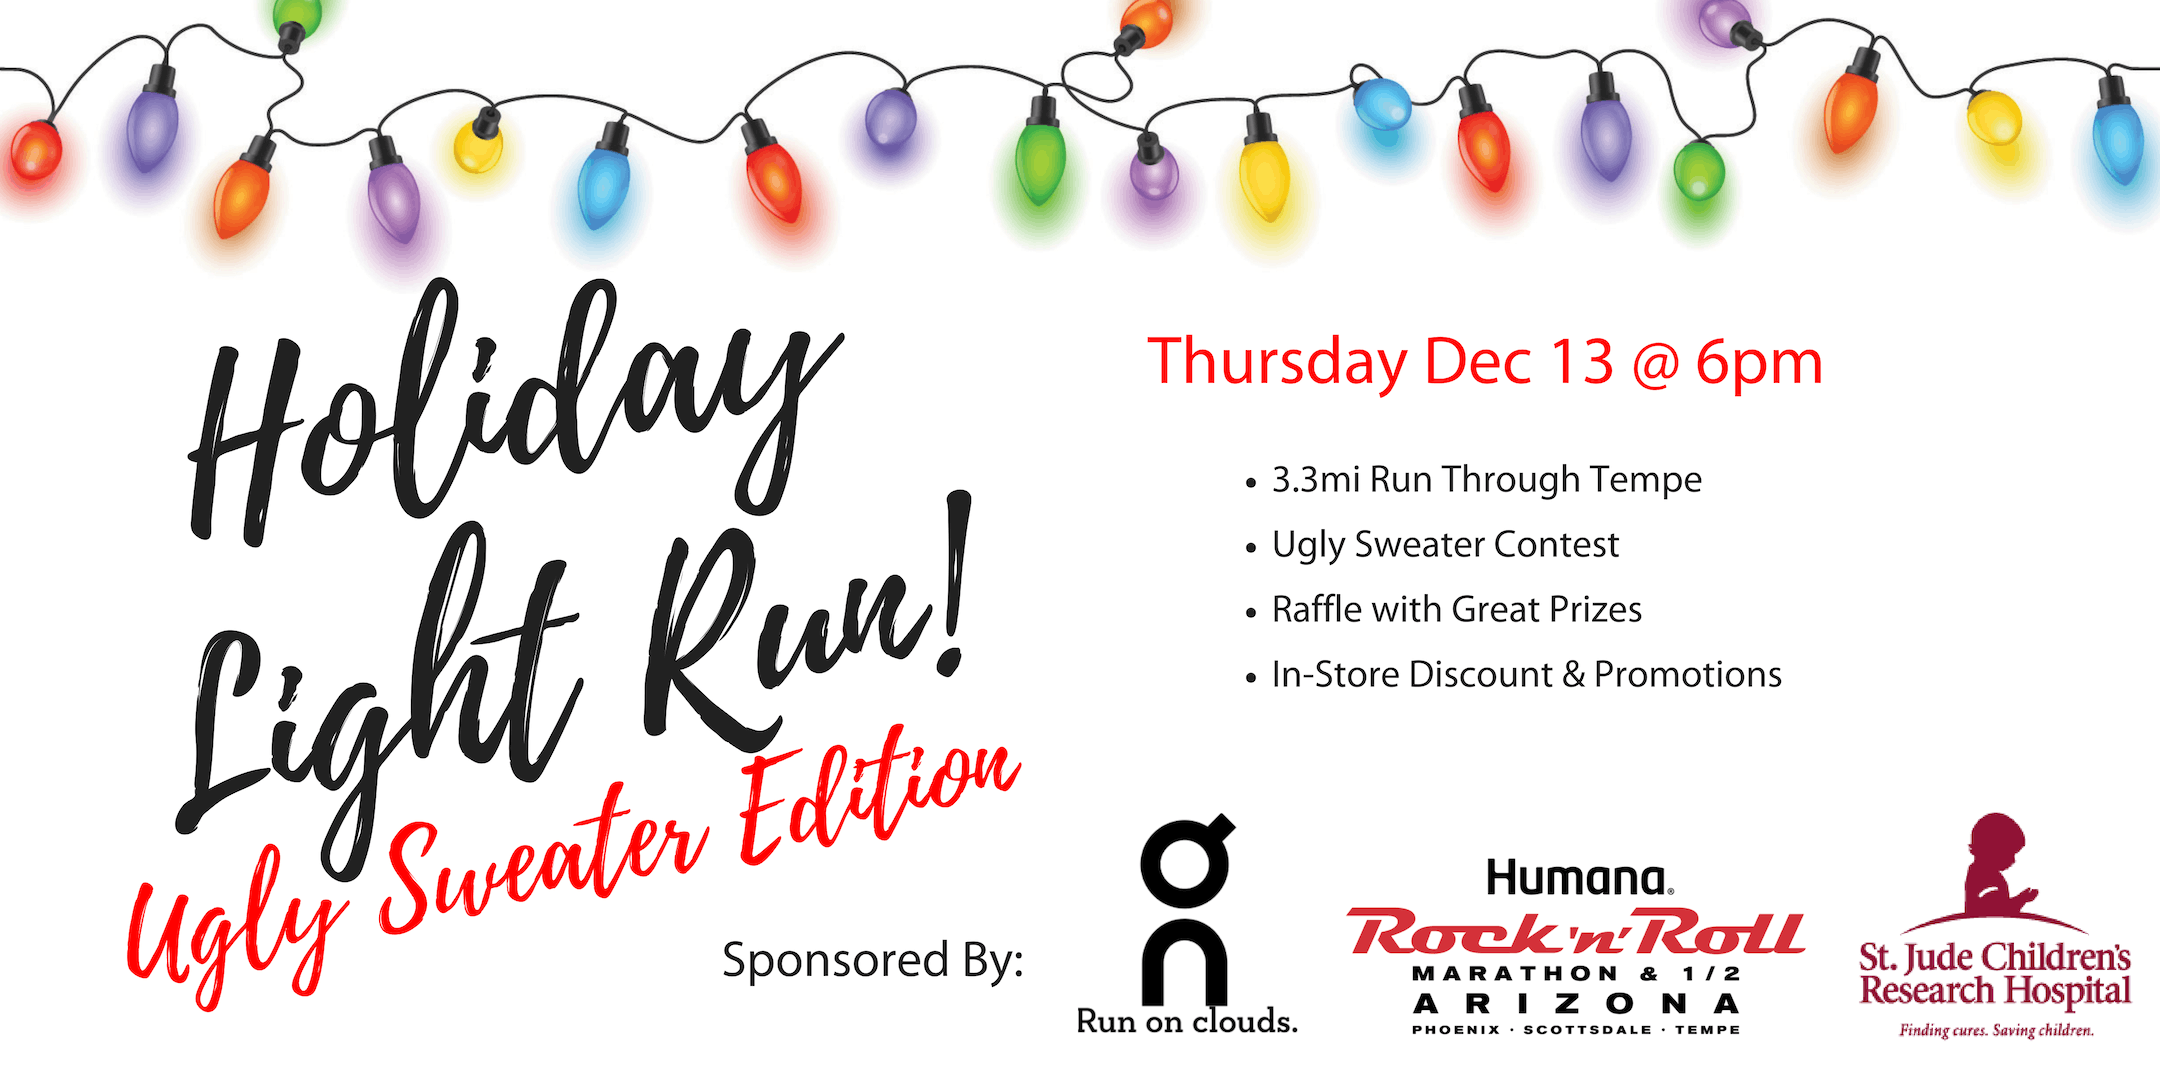 Holiday Light Run: Ugly Sweater Edition - Presented By On